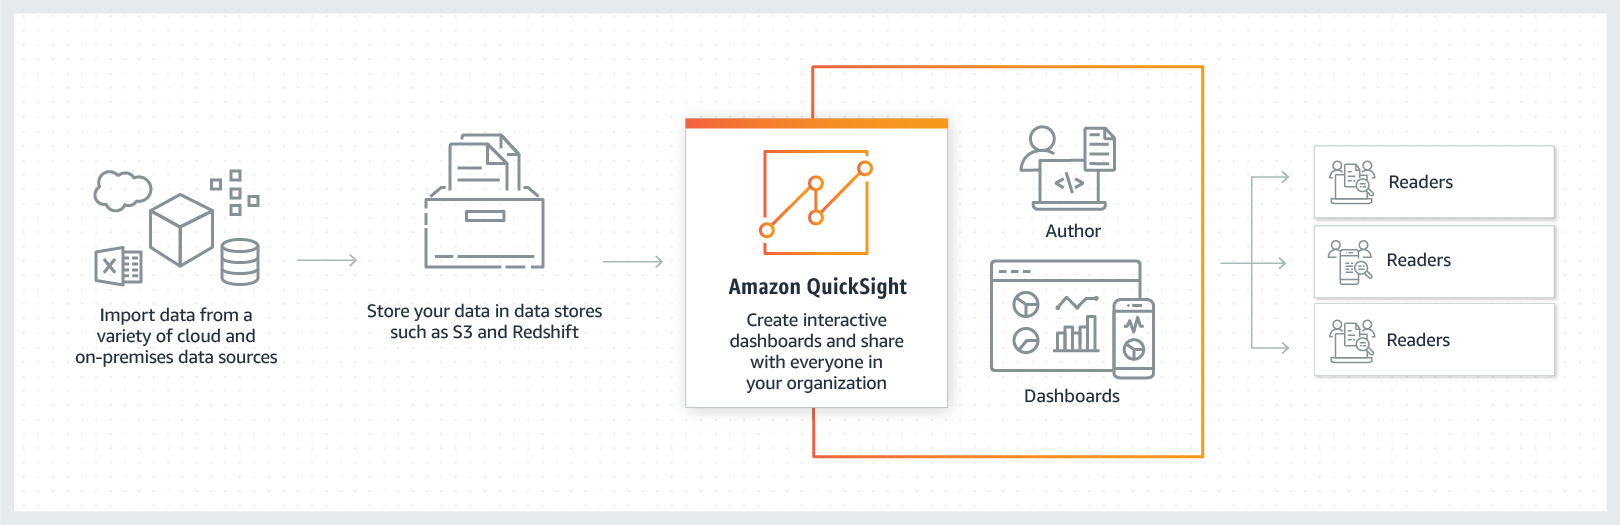 使用 Amazon Quicksight 提供互動式儀表板